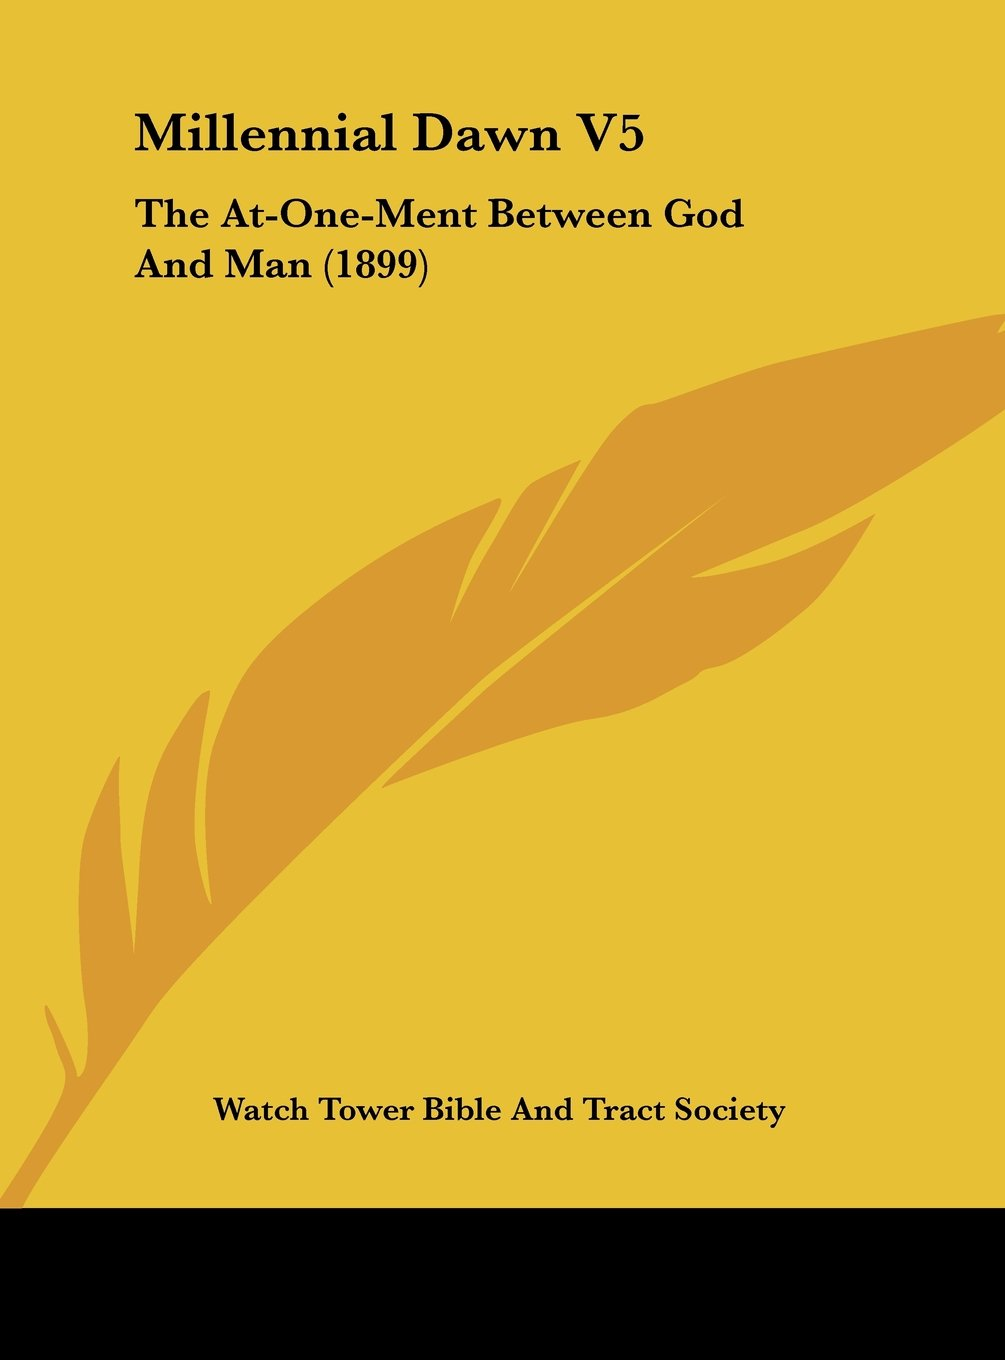 Millennial Dawn V5: The At-One-Ment Between God And Man (1899) pdf